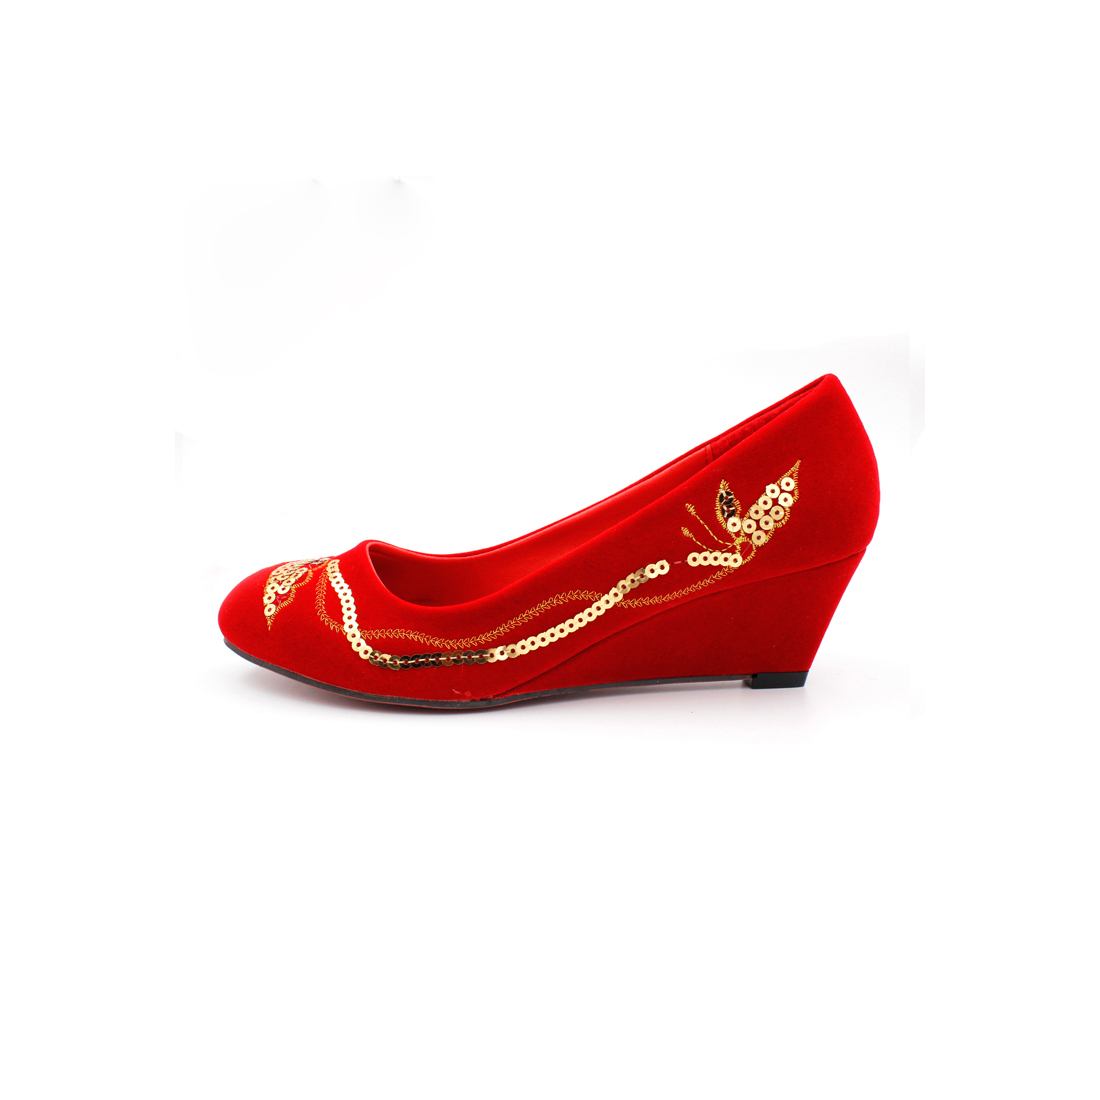 Bride wedding dress shoes red chinese xiu clothing cheongsam dress embroidered shoes wedding shoes slope with sequined shoes shoes female models